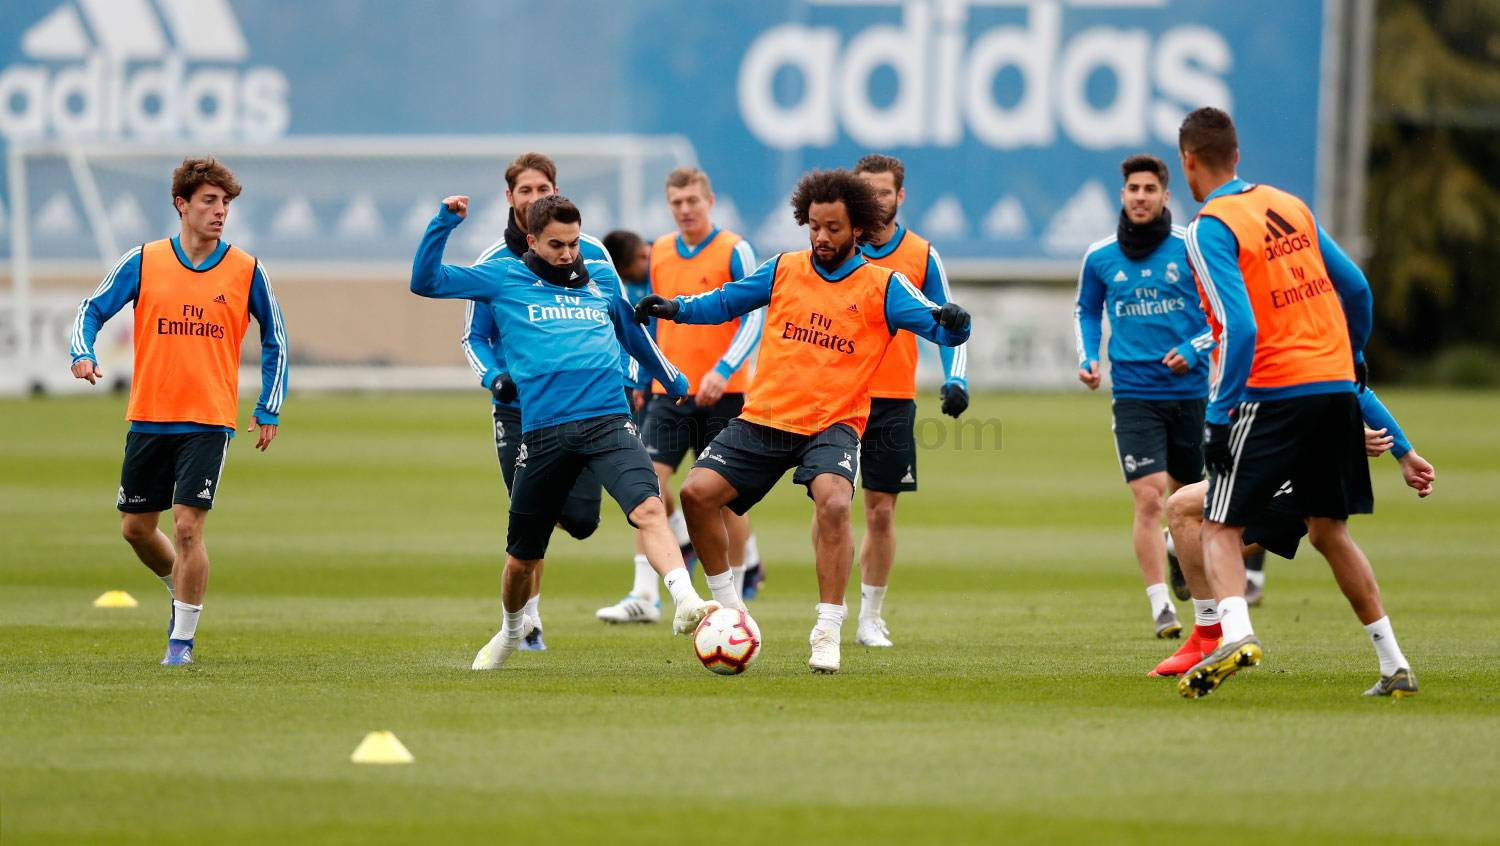 Real Madrid - Entrenamiento del Real Madrid - 05-04-2019